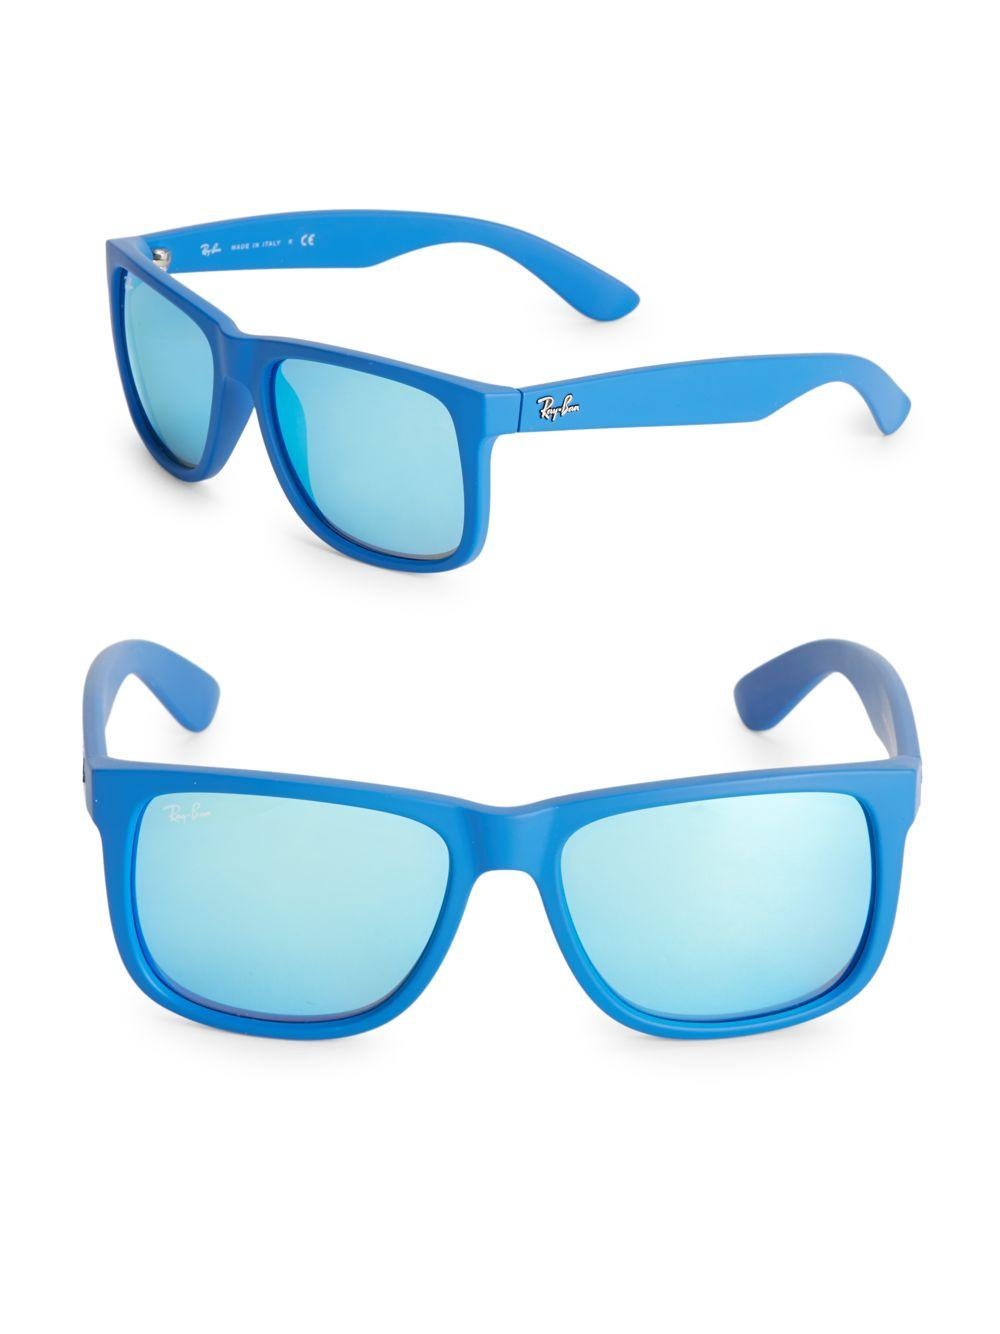 ba3efb0b3c4 Lyst - Ray-Ban Square Temple Logo Sunglasses in Blue